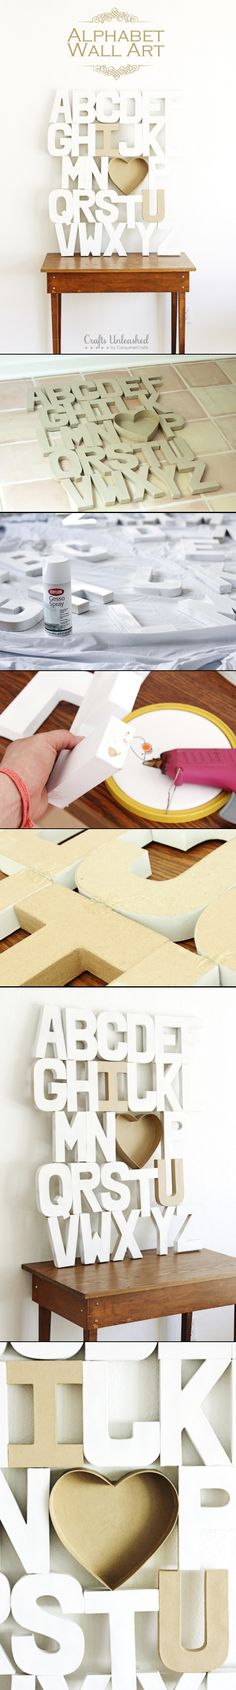 Alphabet Wall Craft